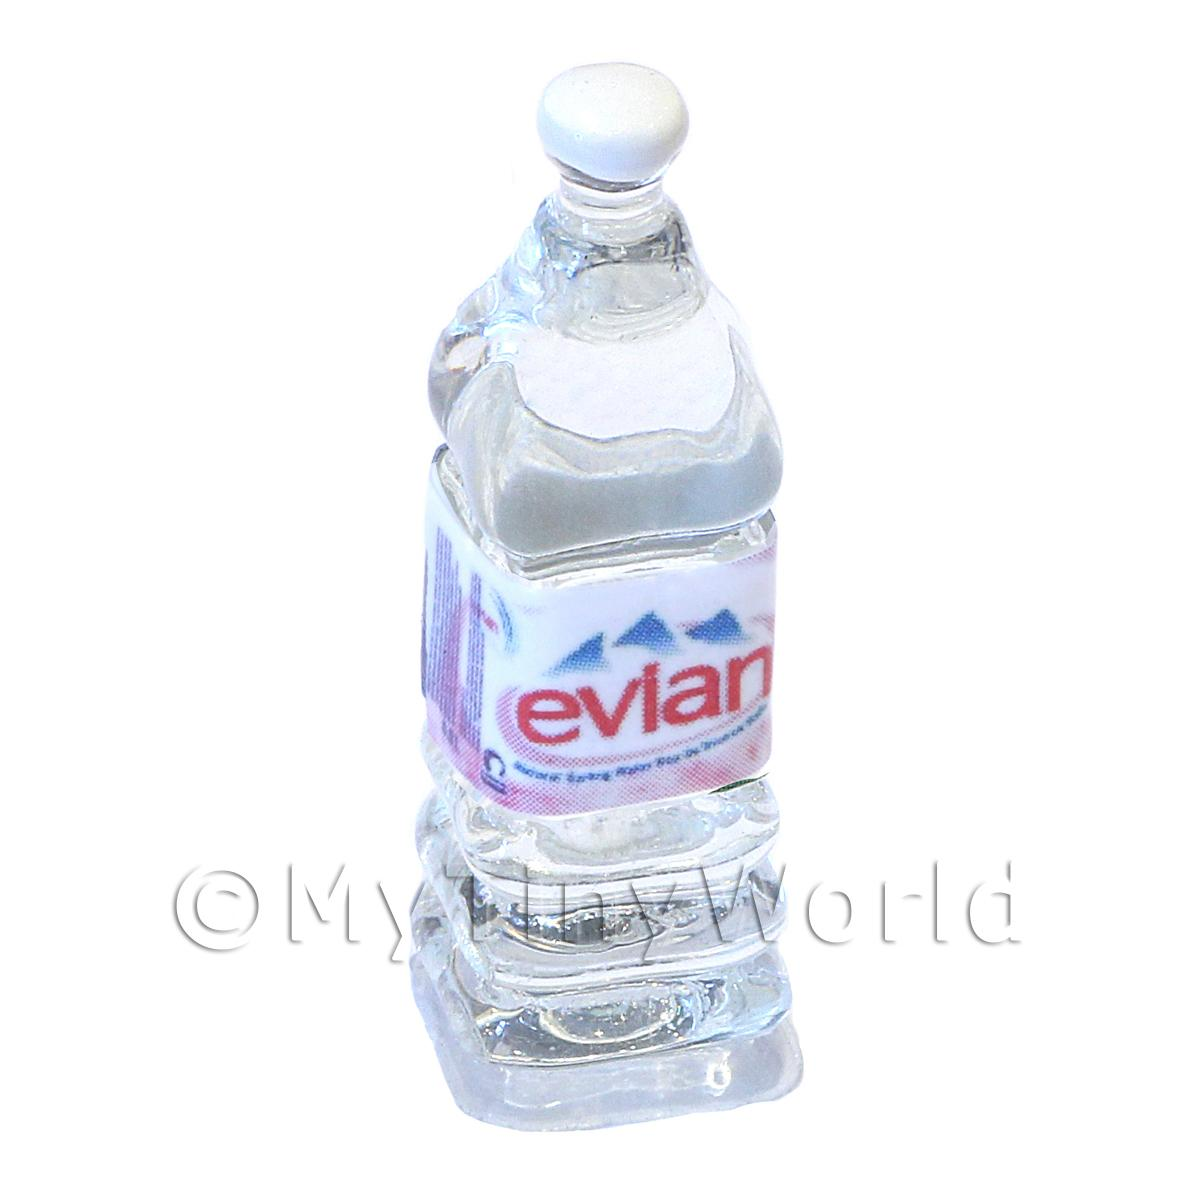 1/12 Scale Dolls House Miniatures  | Dolls House Miniature Large Evian Brand Square Water Bottle